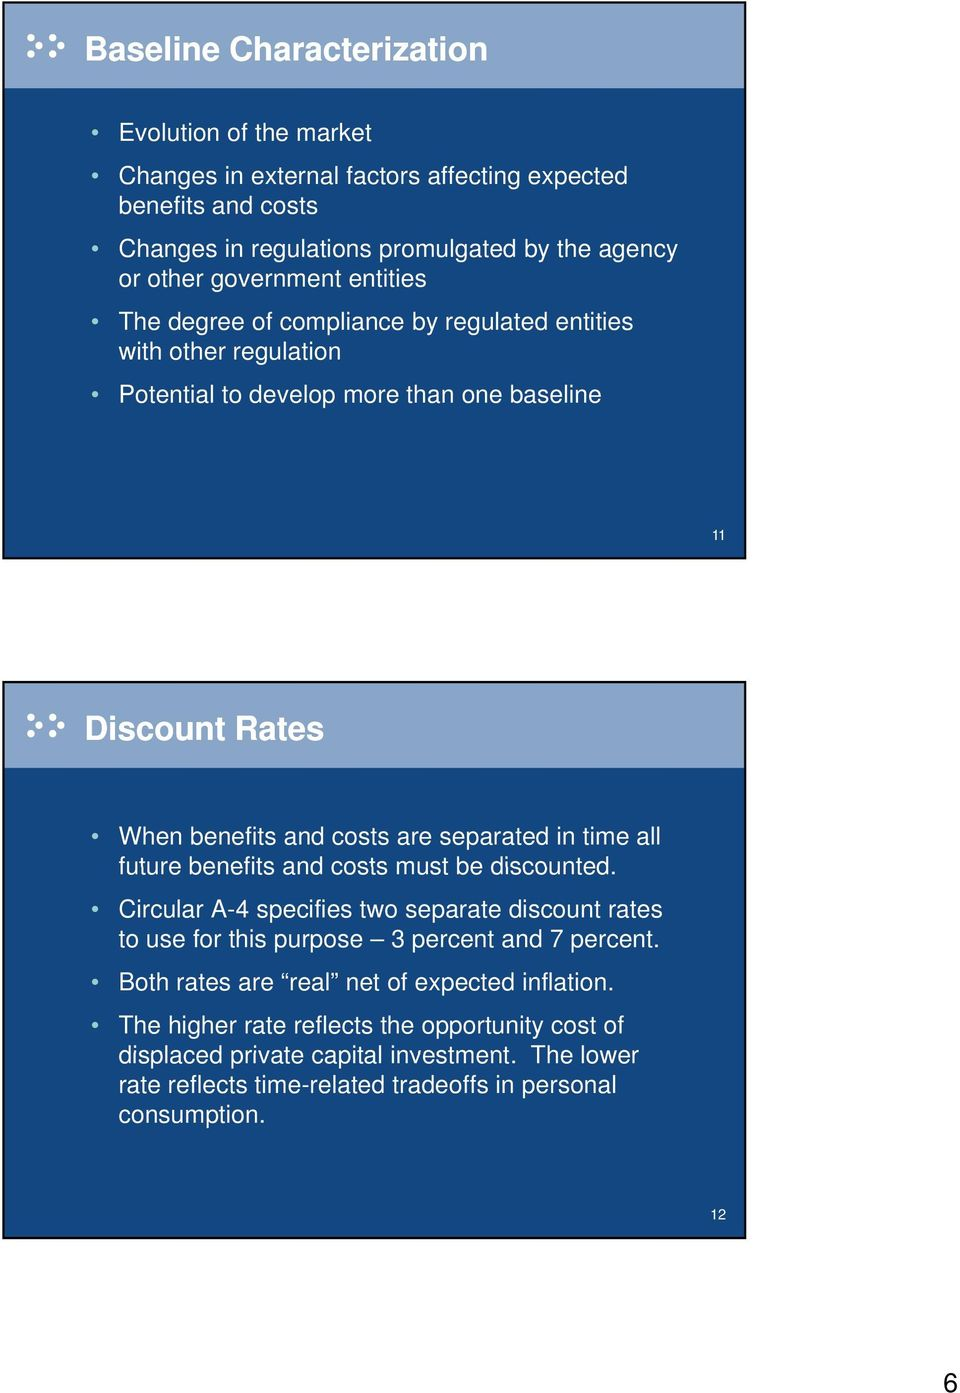 separated in time all future benefits and costs must be discounted. Circular A-4 specifies two separate discount rates to use for this purpose 3 percent and 7 percent.